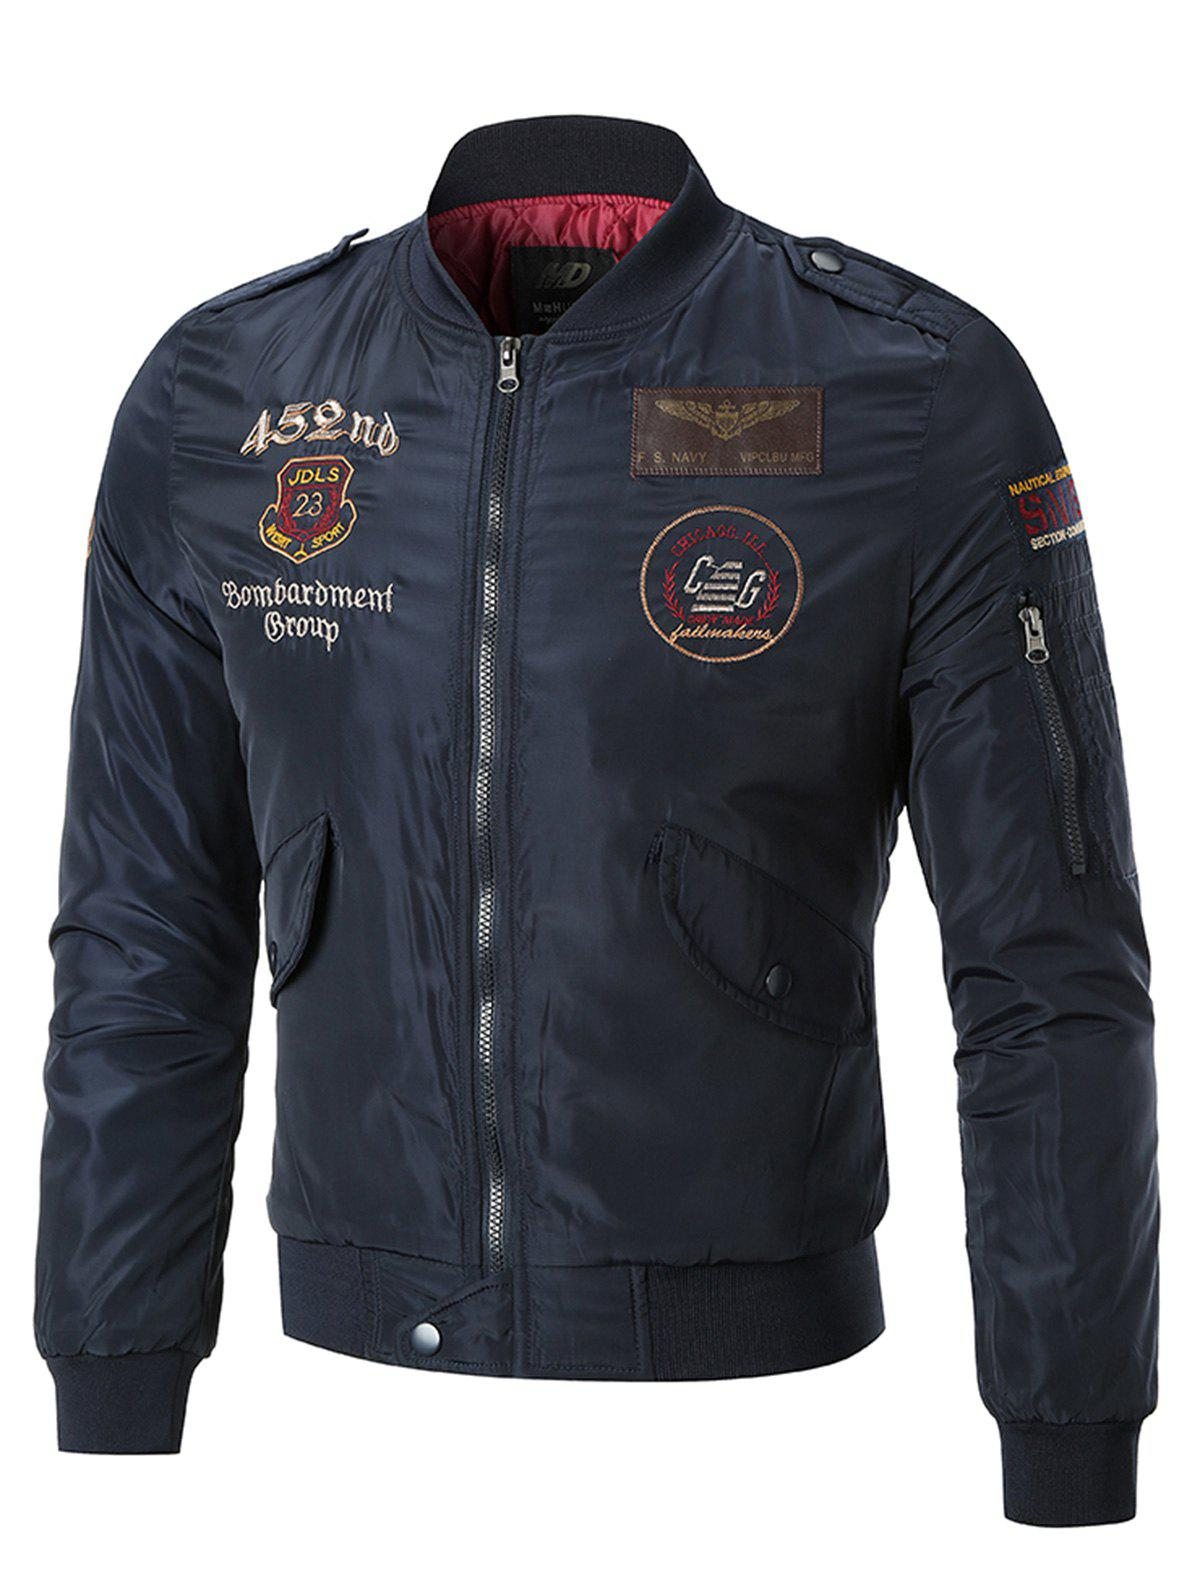 Store Sleeve Pocket Patches Embroidered Bomber Jacket